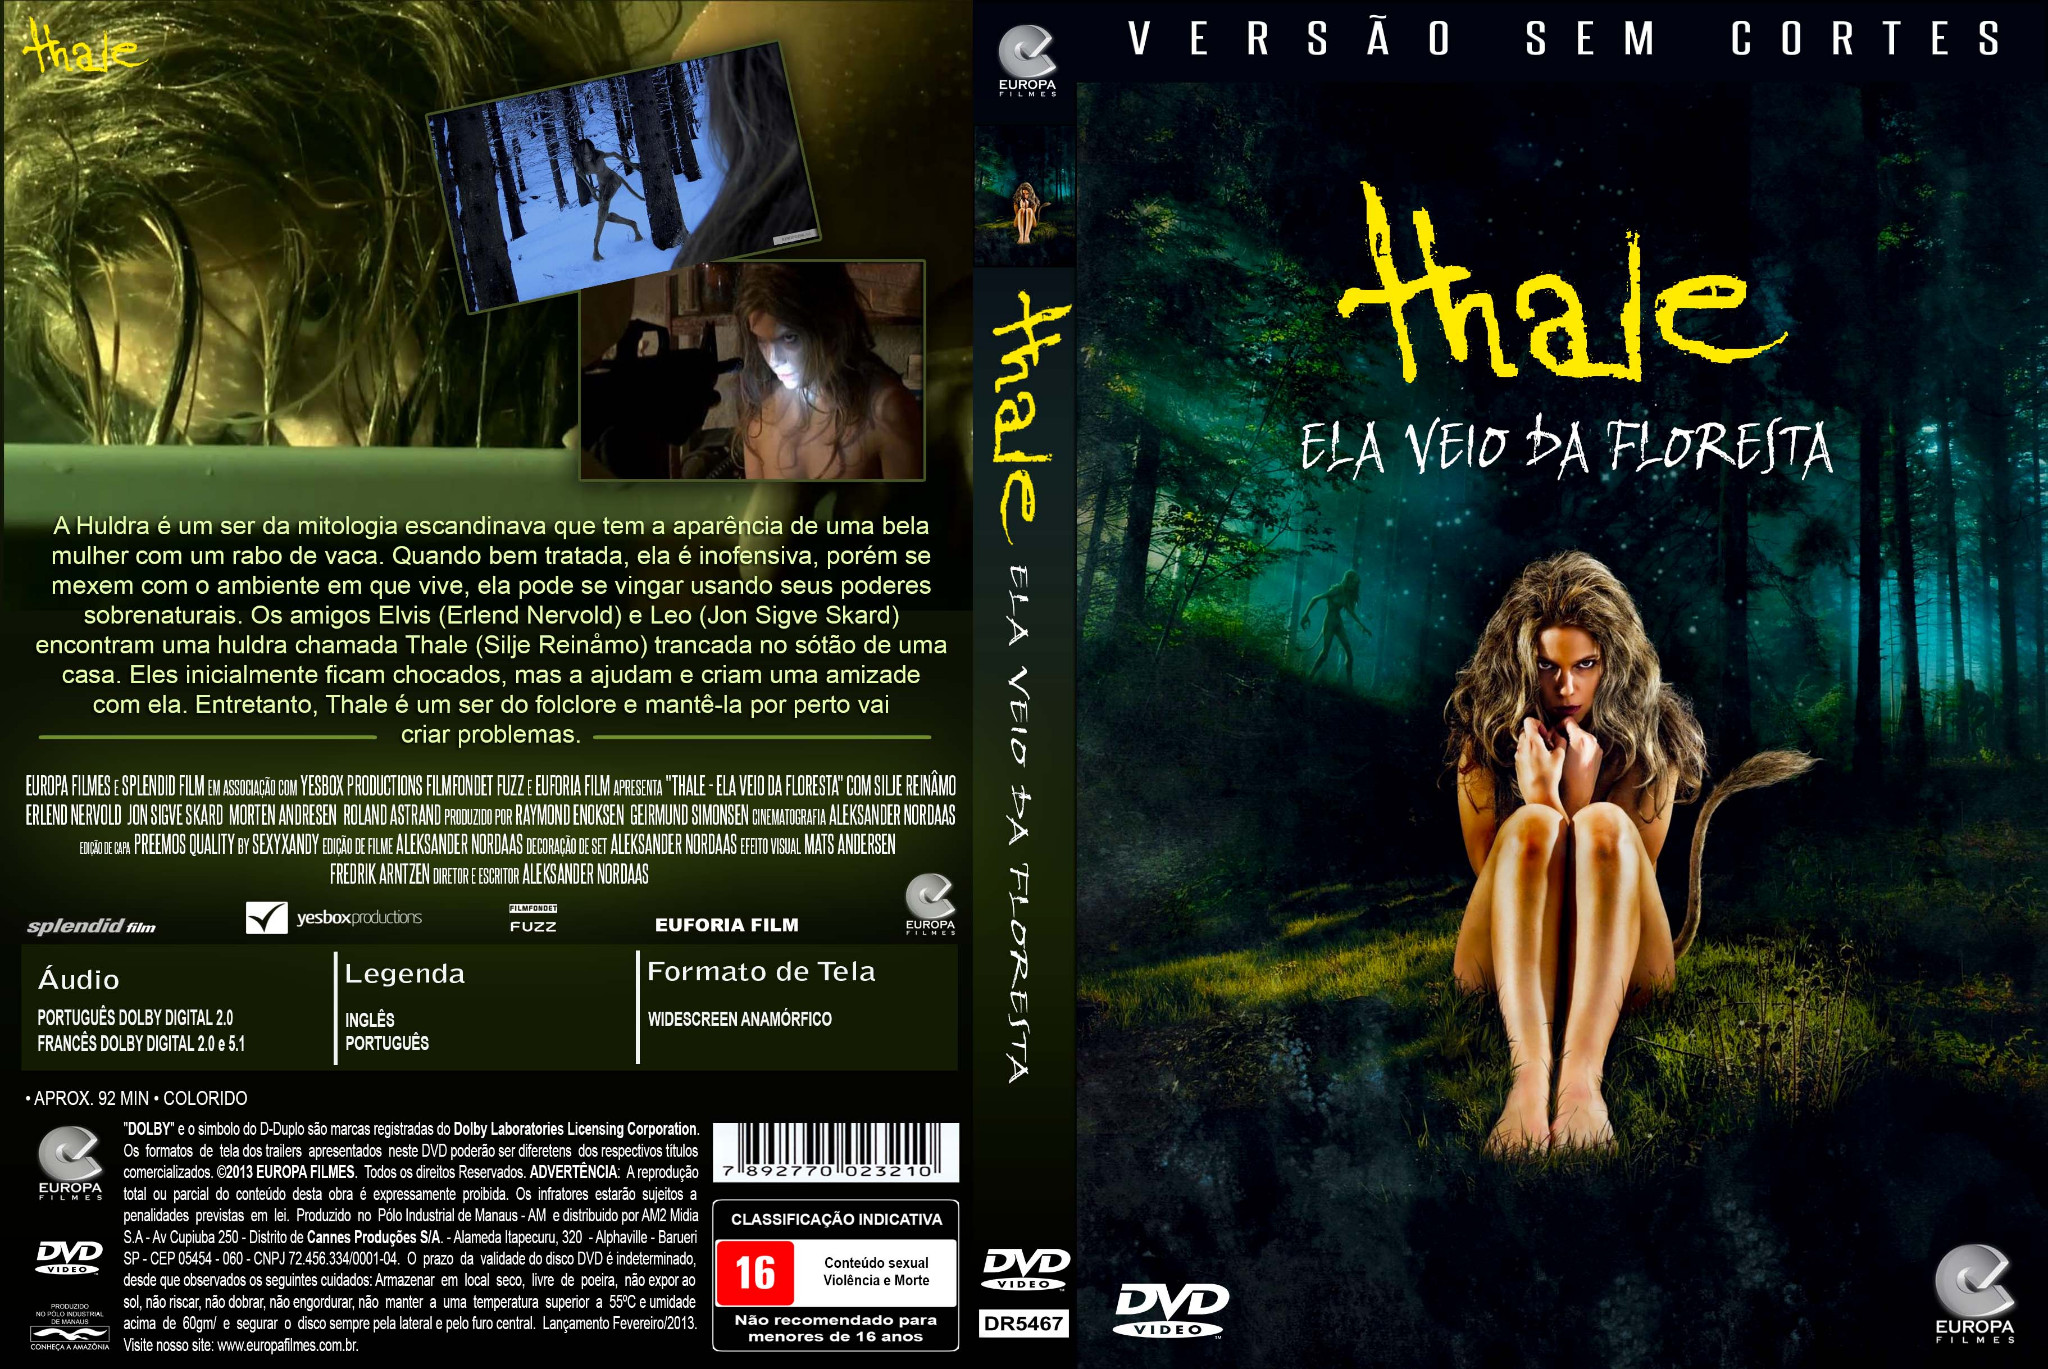 Download Segredo Sombrio DVDRip XviD Dual Áudio Capa   Thale   Ela Veio Da Floresta